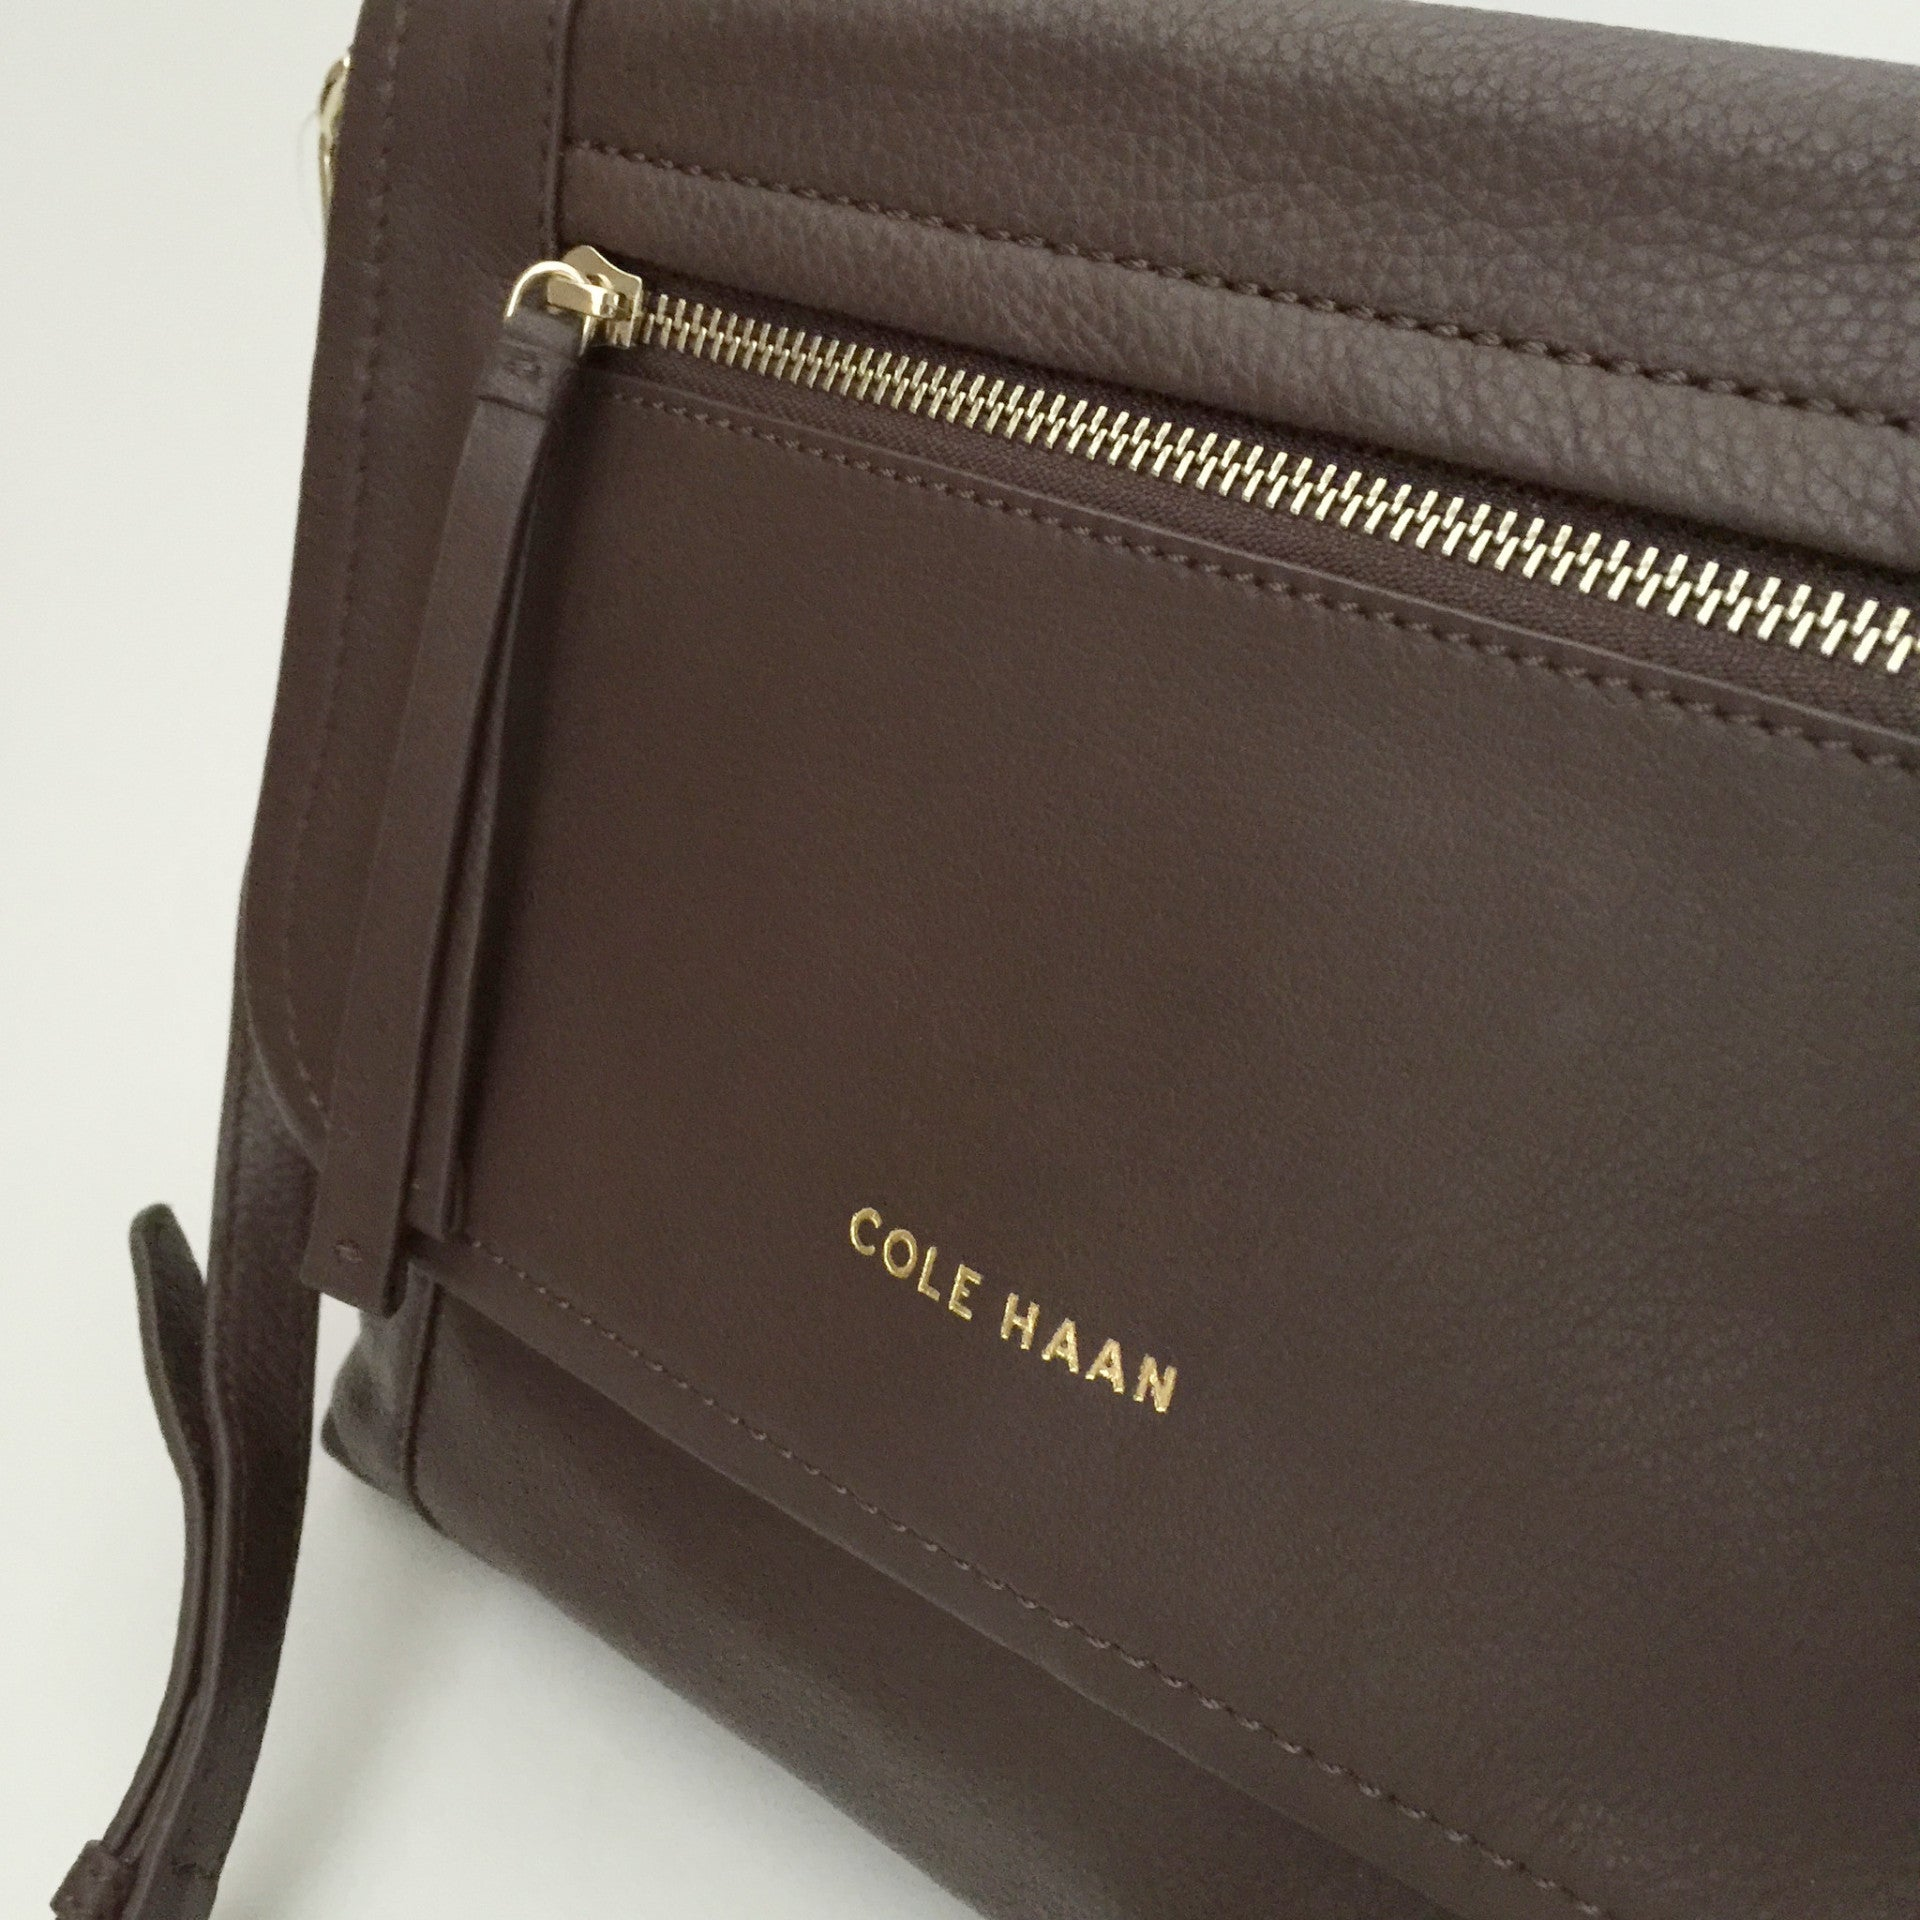 Authentic COLE HAAN Shoulder Bag